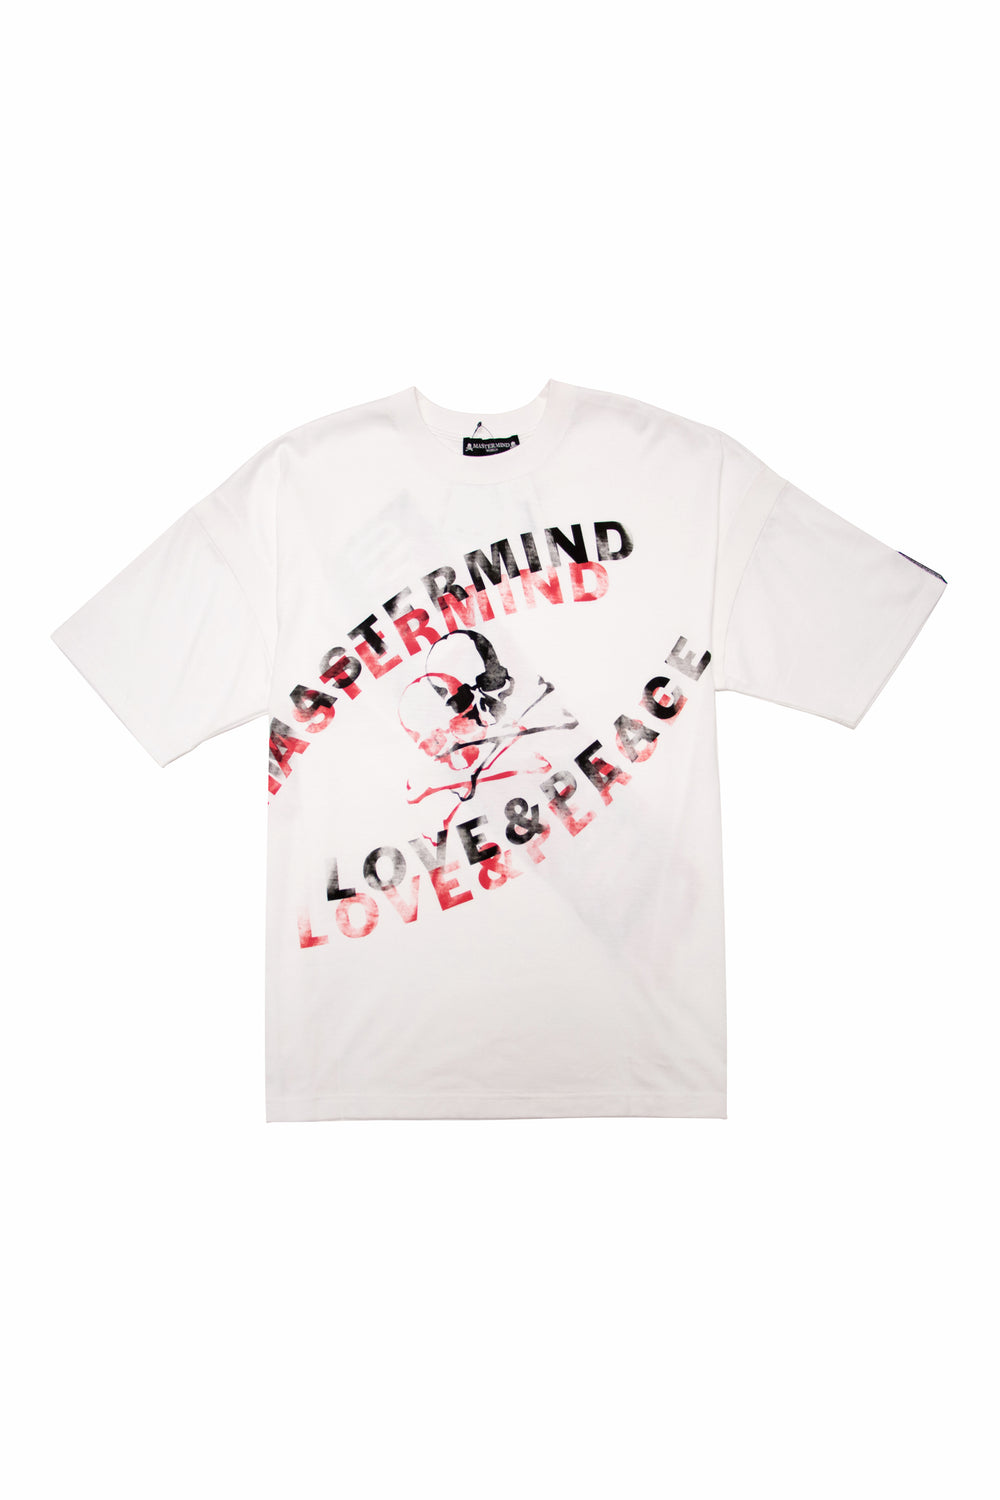 Mastermind World Love & Peace T-Shirt In White